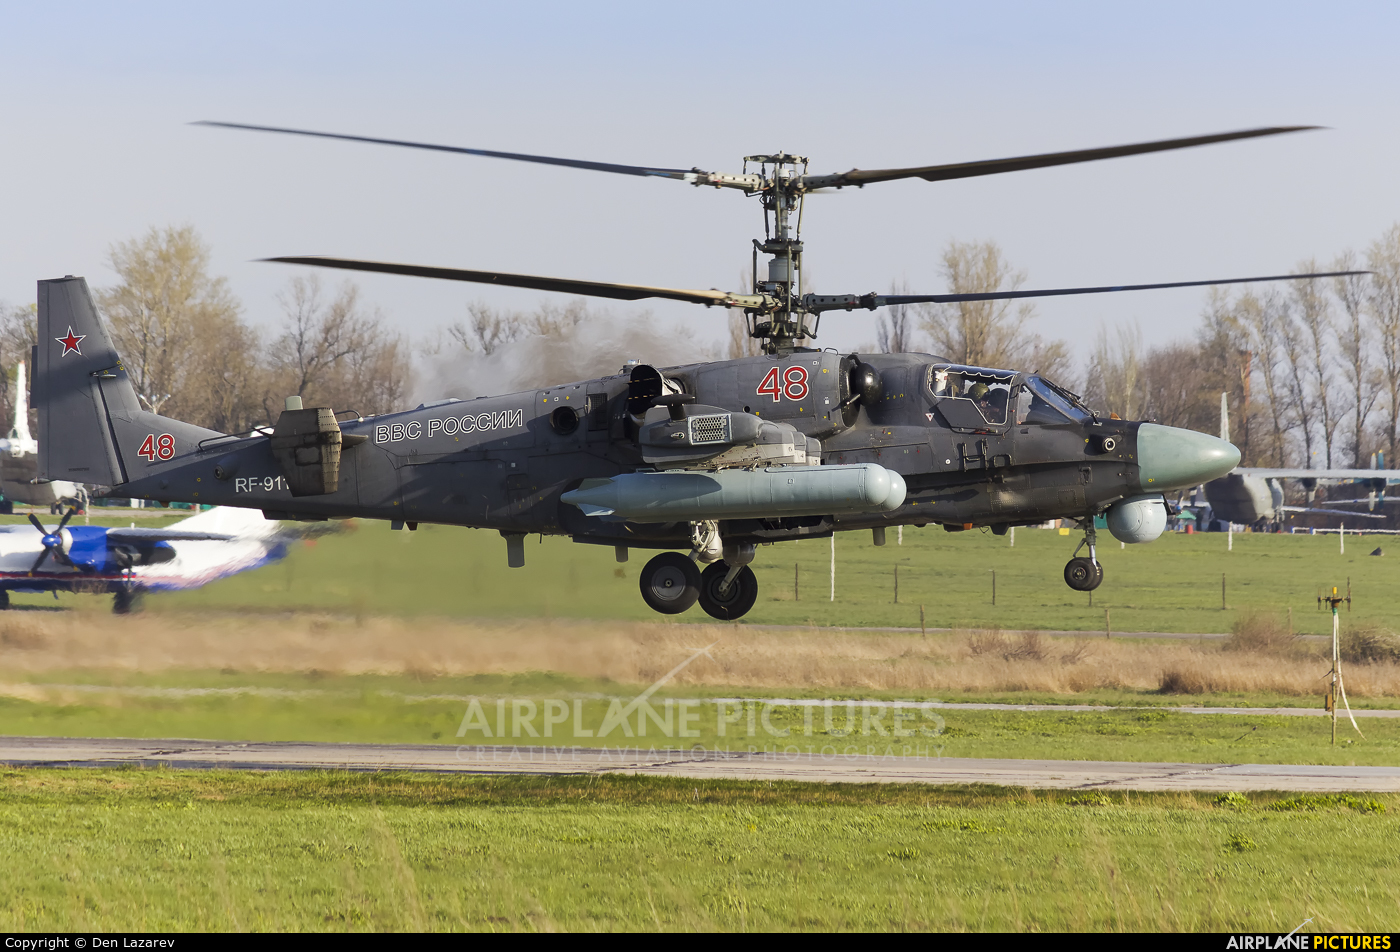 Russia - Air Force 48 aircraft at Rostov-on-Don